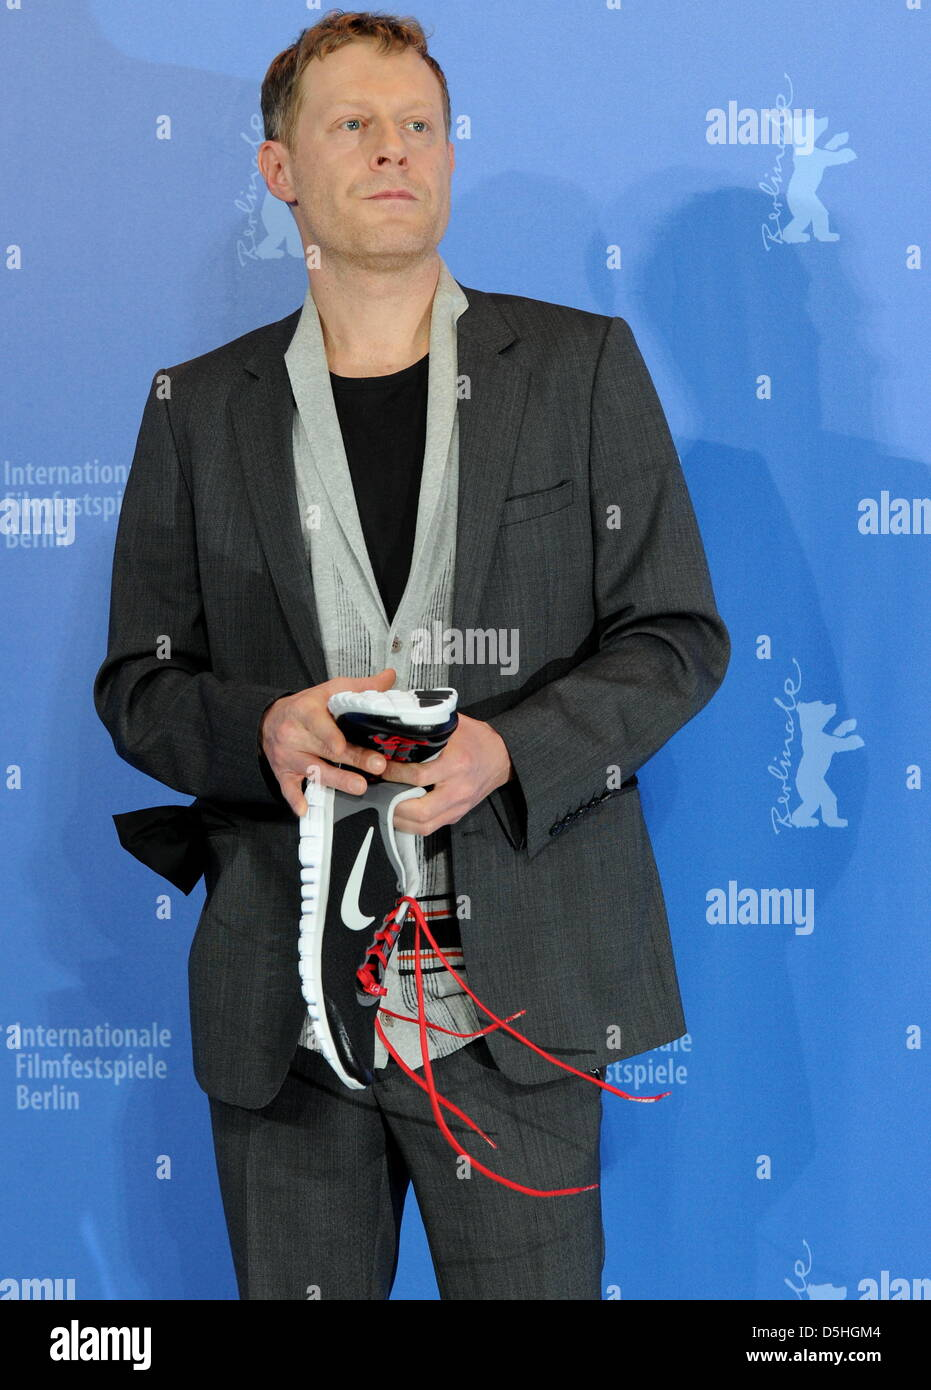 Austrian actor Andreas Lust poses during the photo call for the film 'The Robber' running in competition - Stock Image